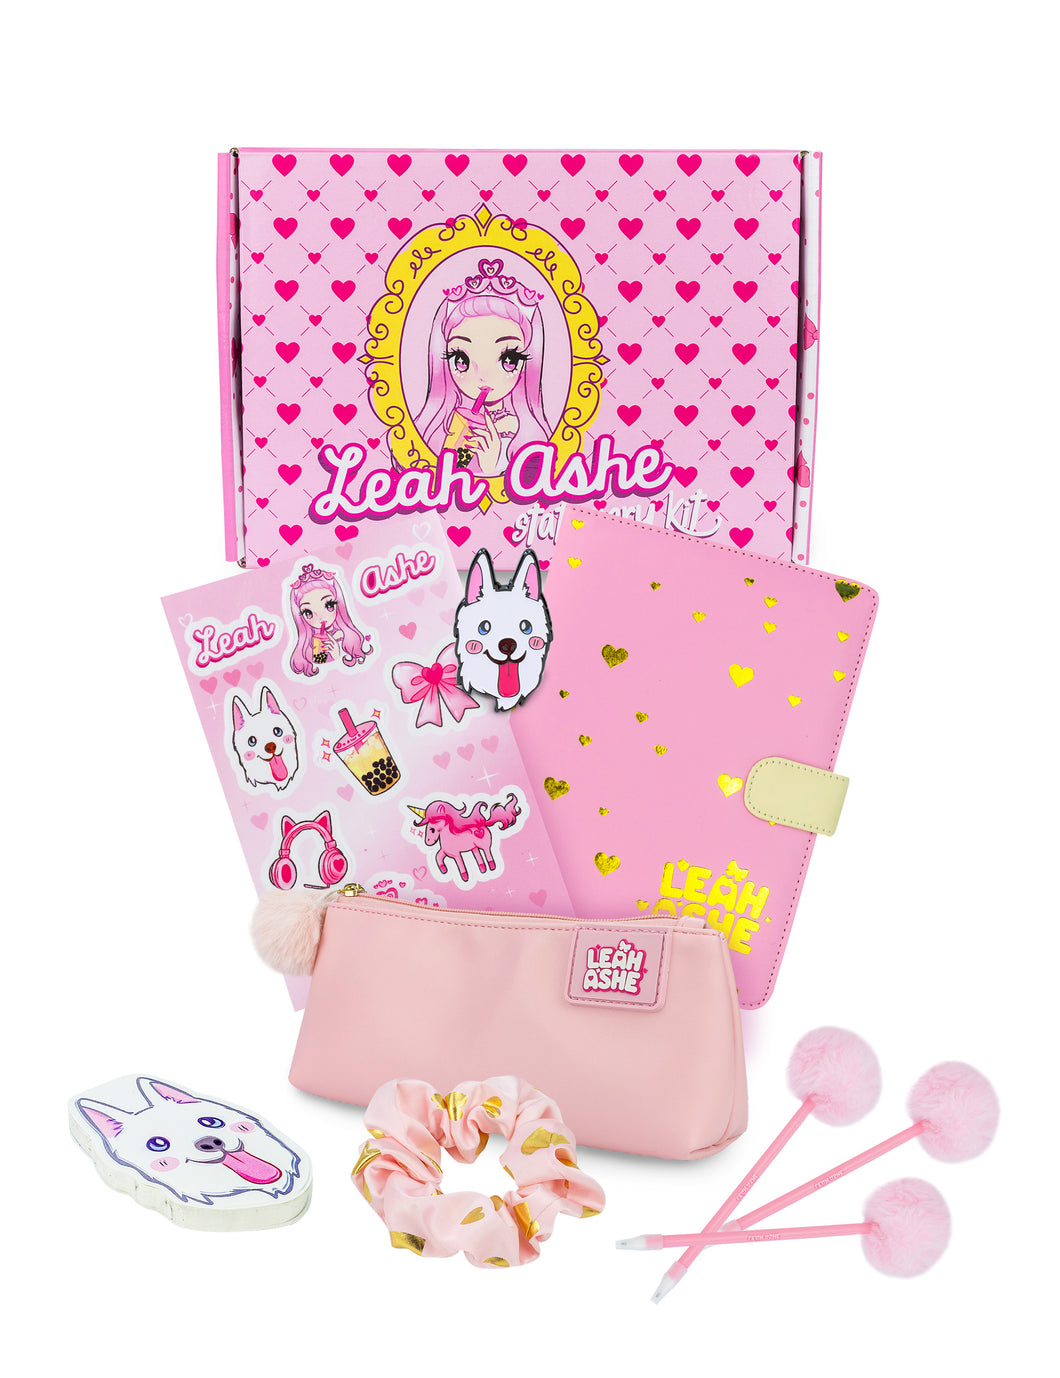 Leah Ashe Stationery Kit